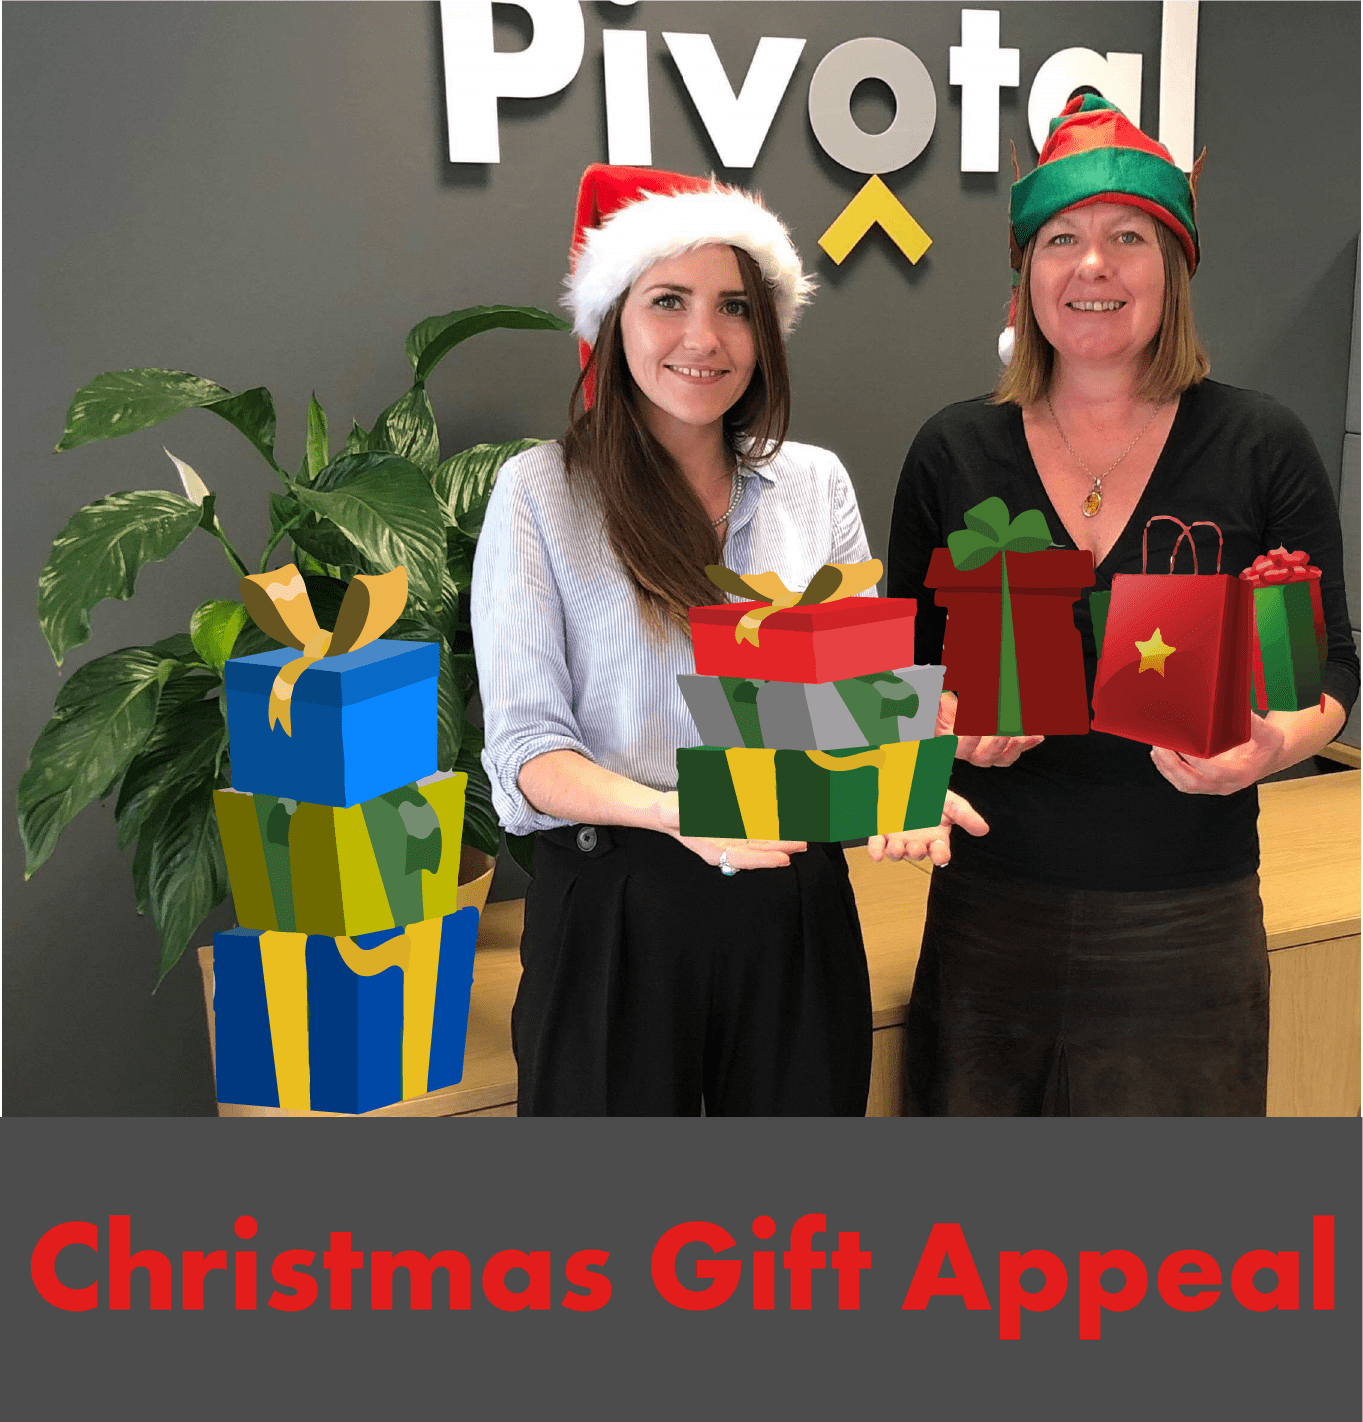 Christmas Gift Appeal: Christmas Gift Appeal For Vulnerable Residents: Calling